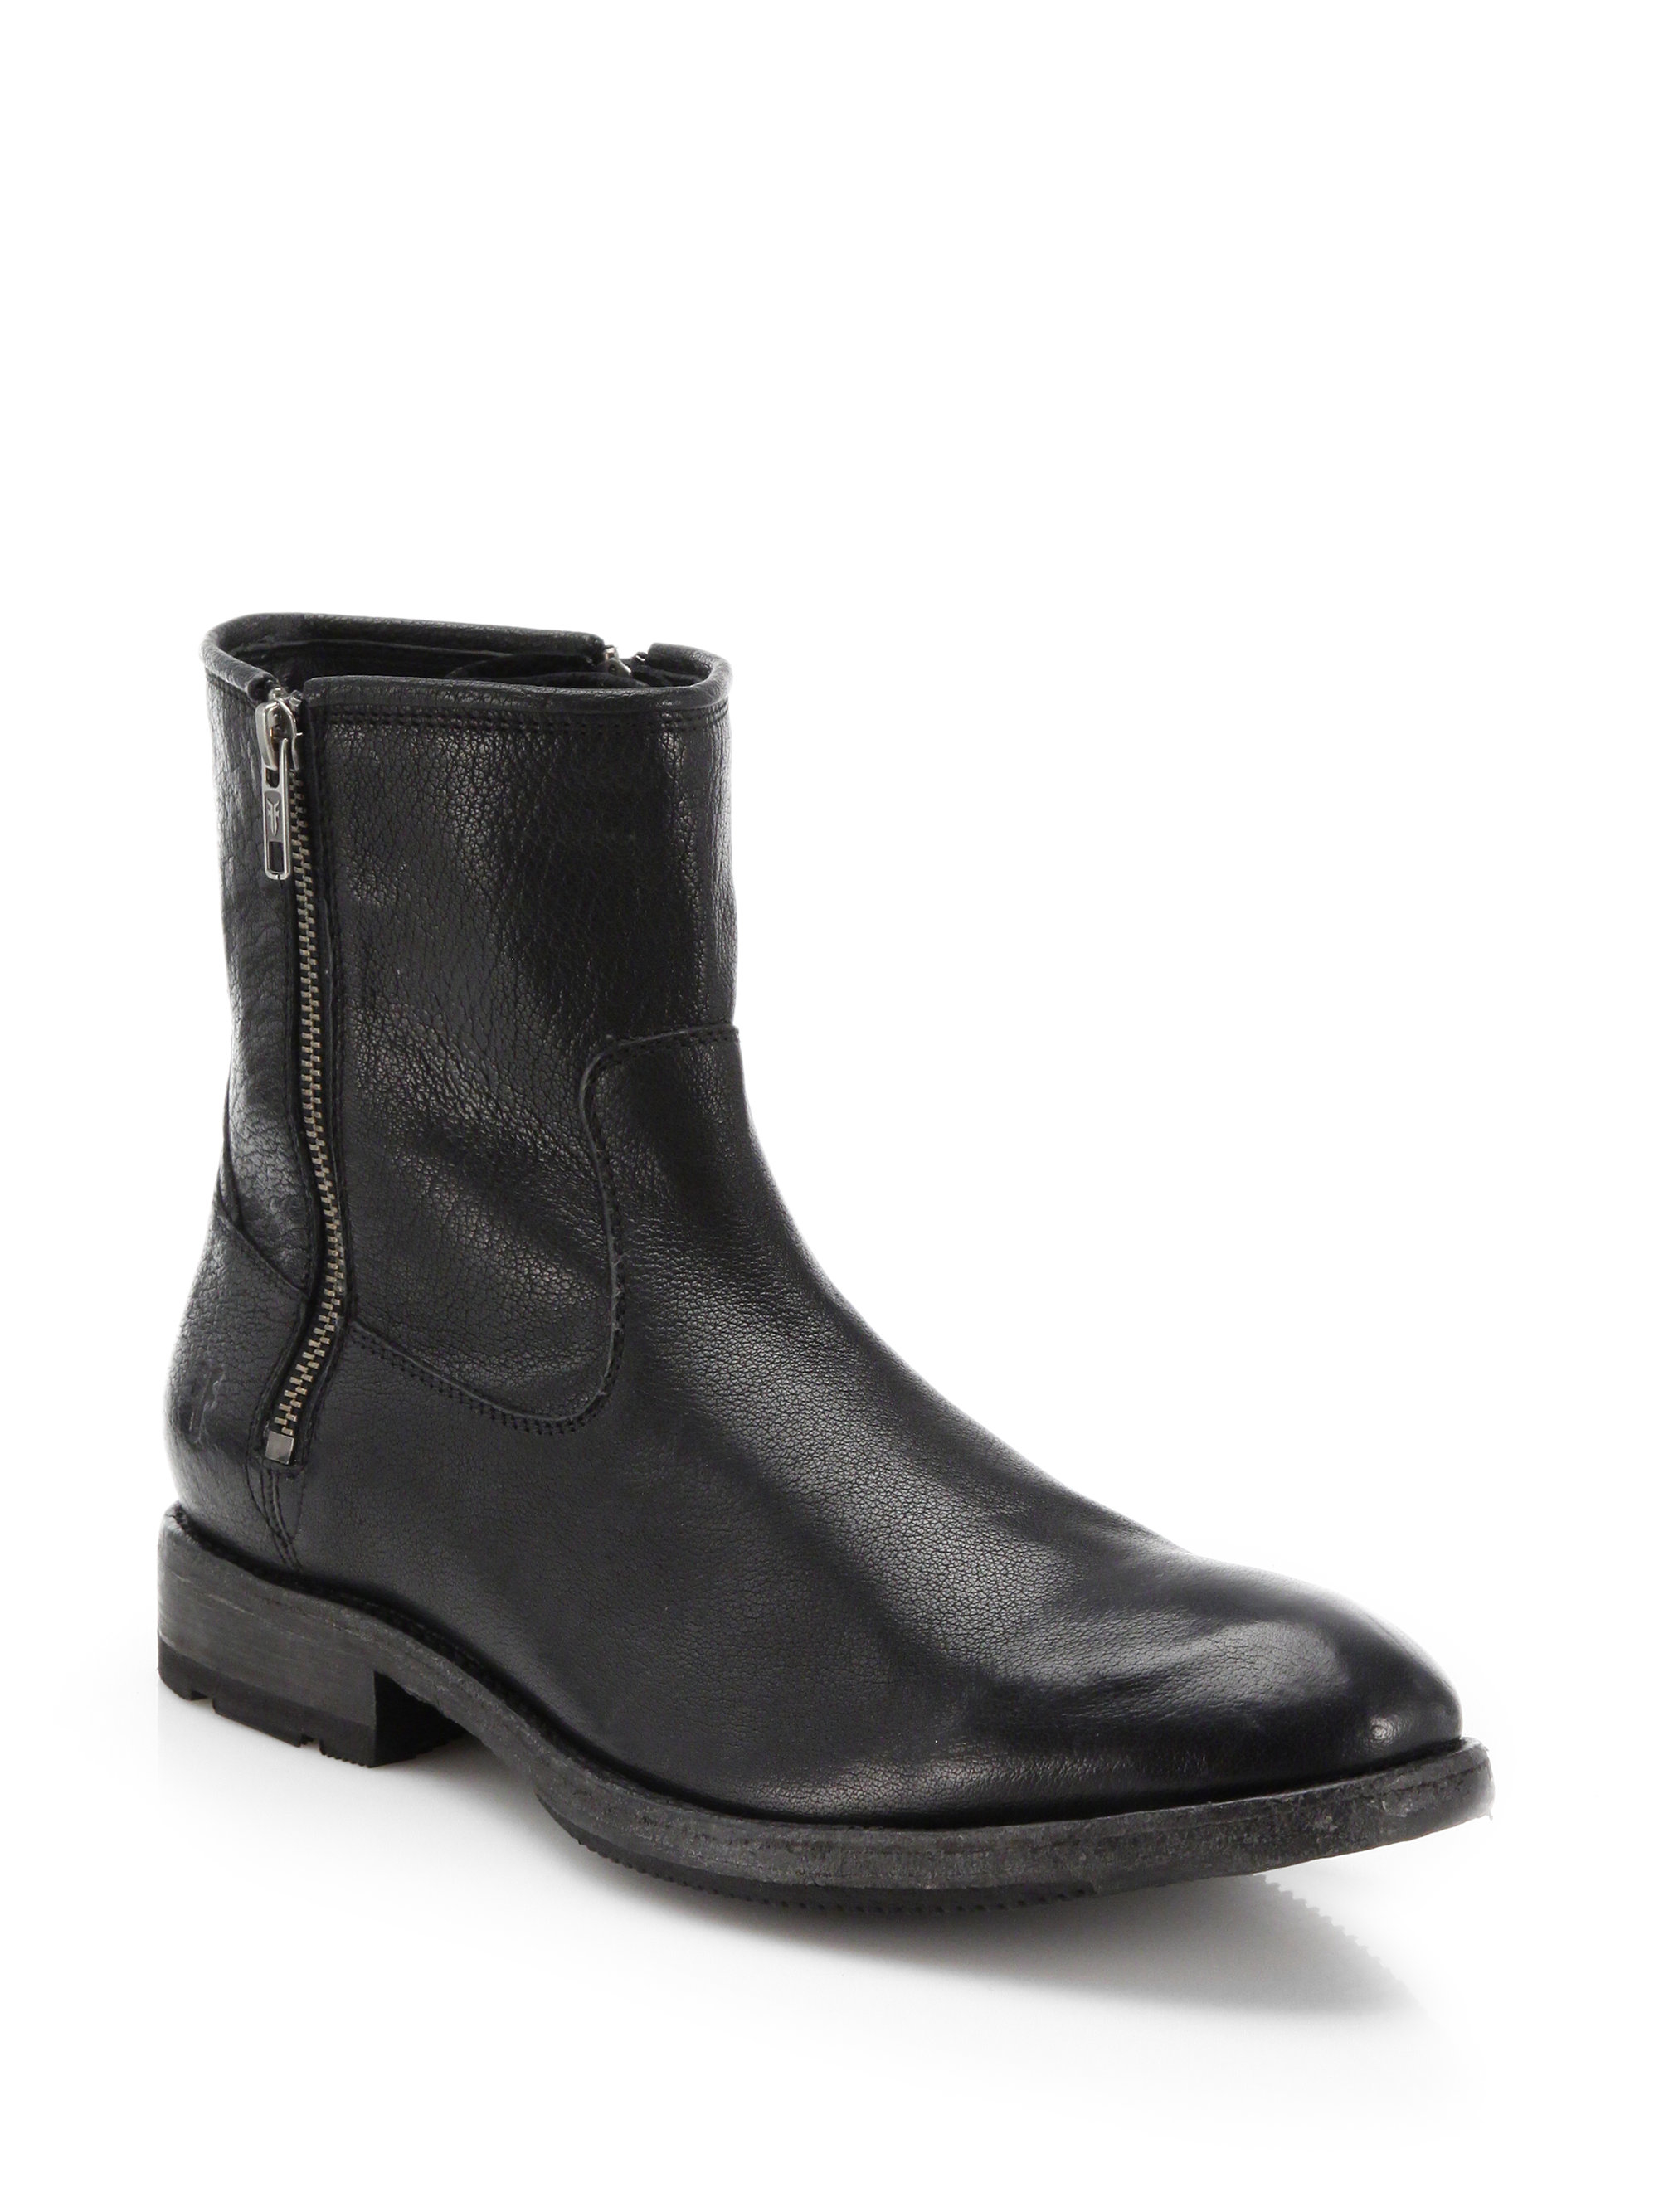 Lyst Frye Ethan Leather Double Zip Boots In Black For Men